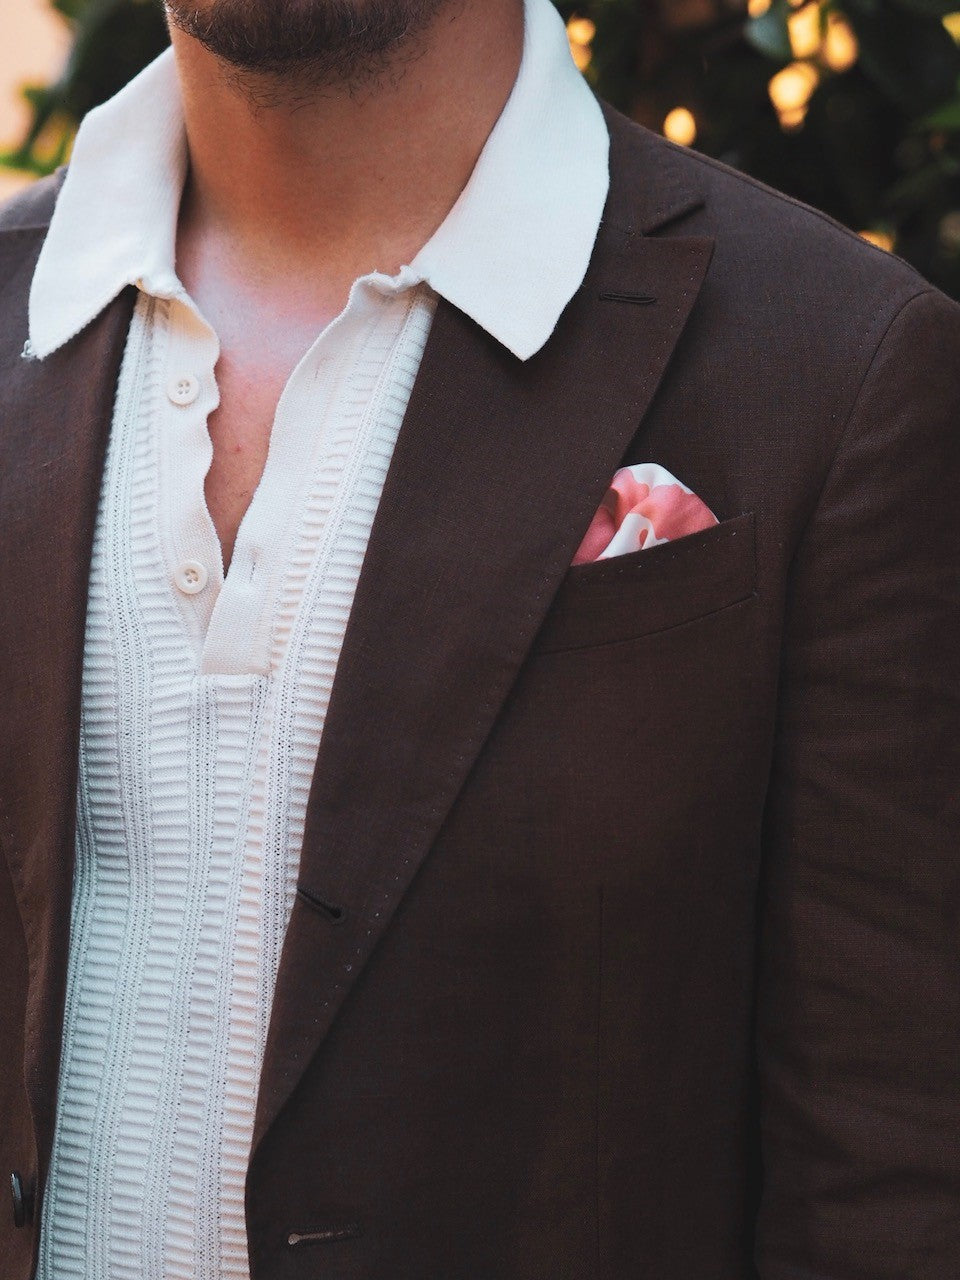 White knitted polo shirt with brown linen suit jacket details and textures